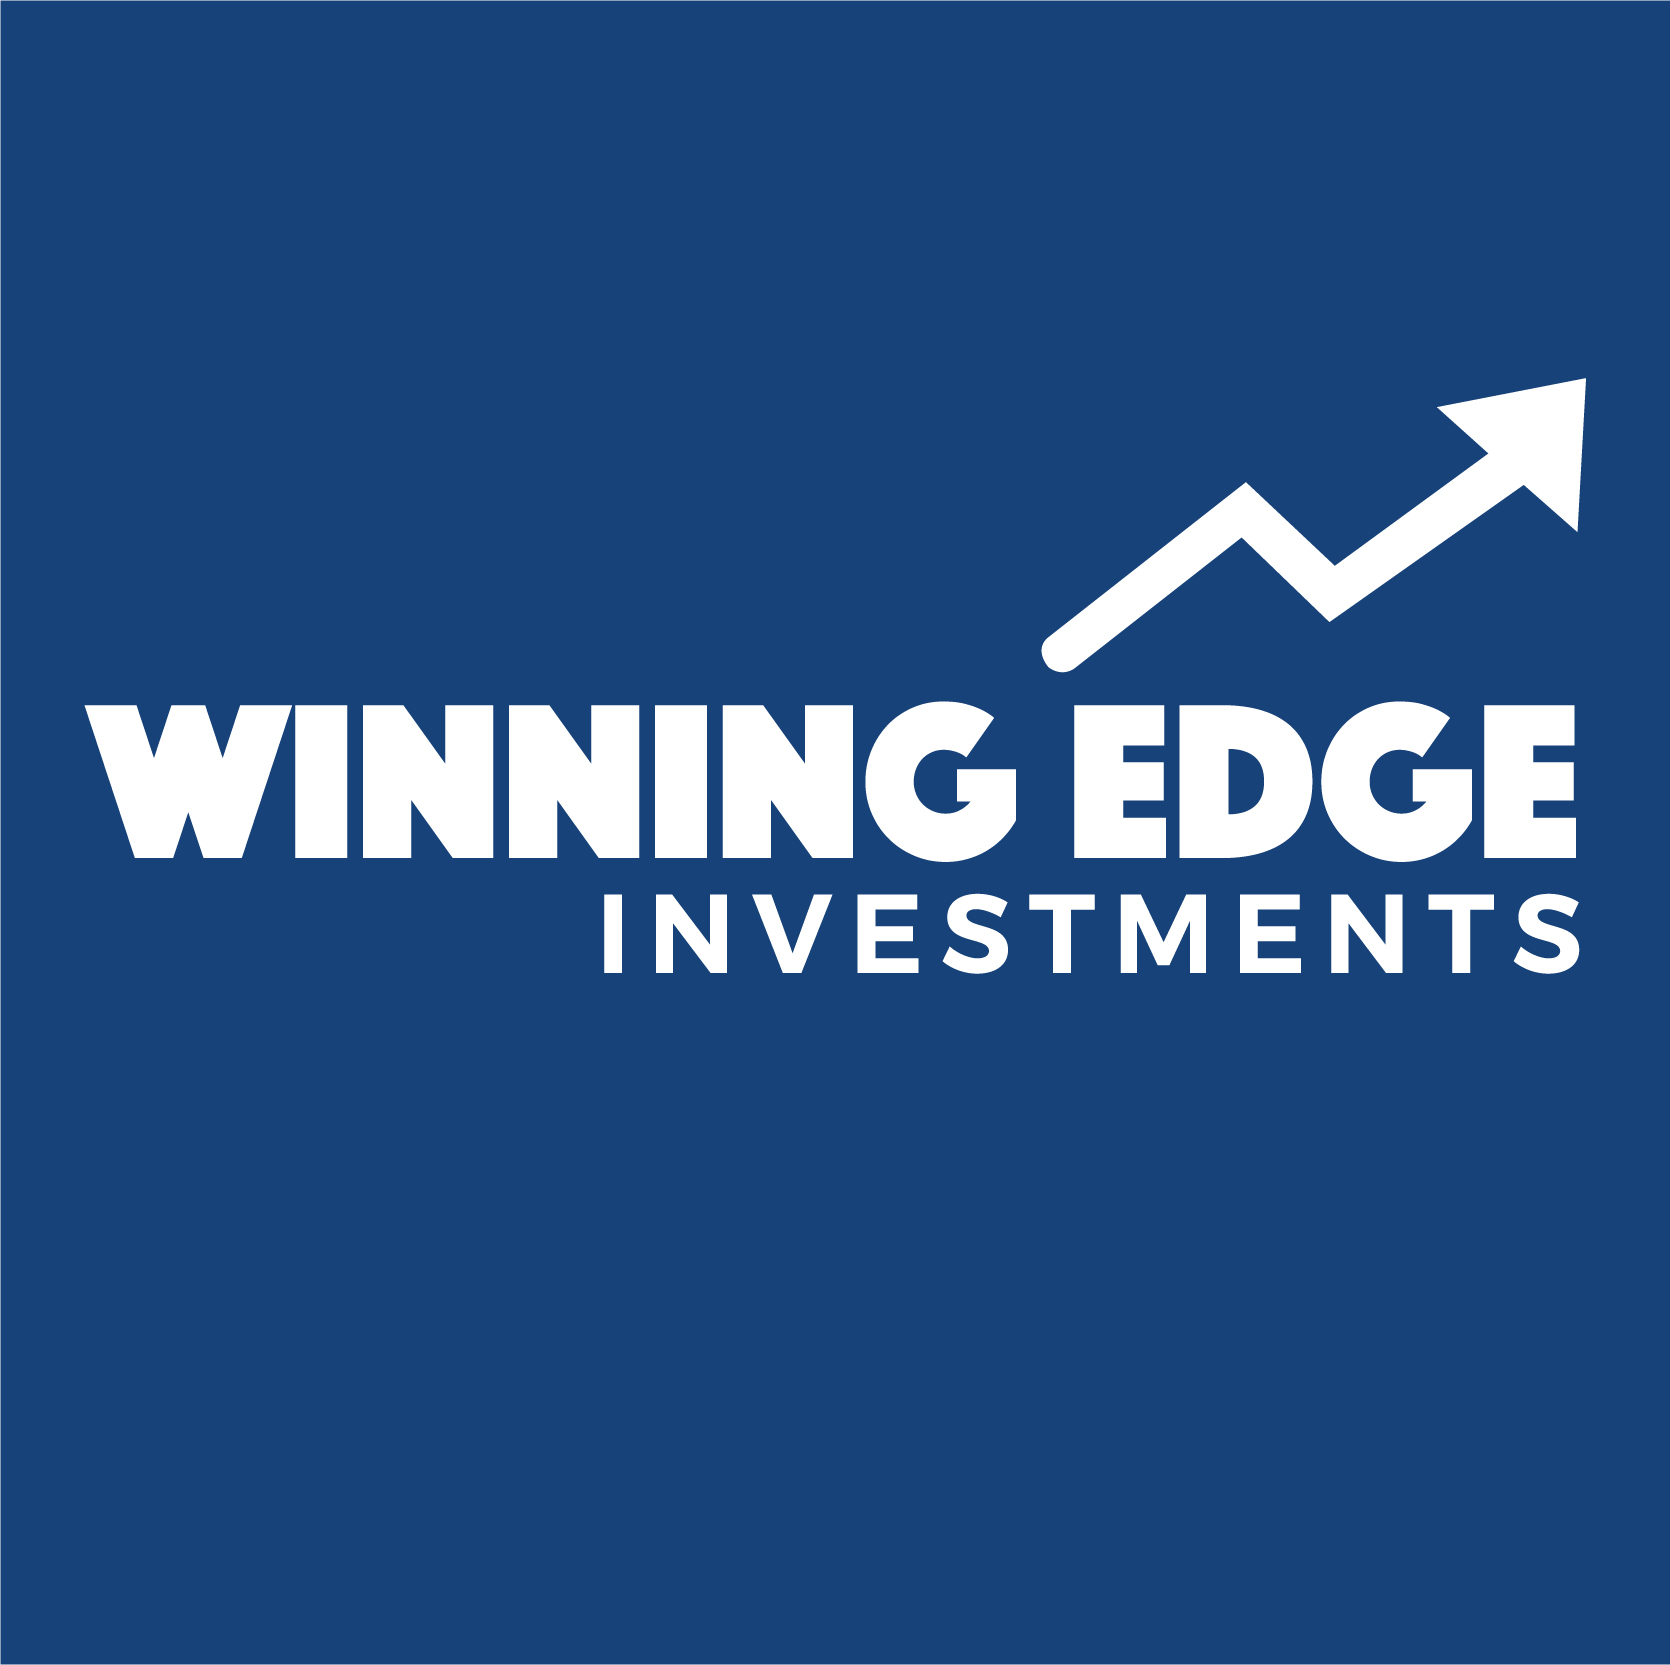 Winning Edge Investments You Tube